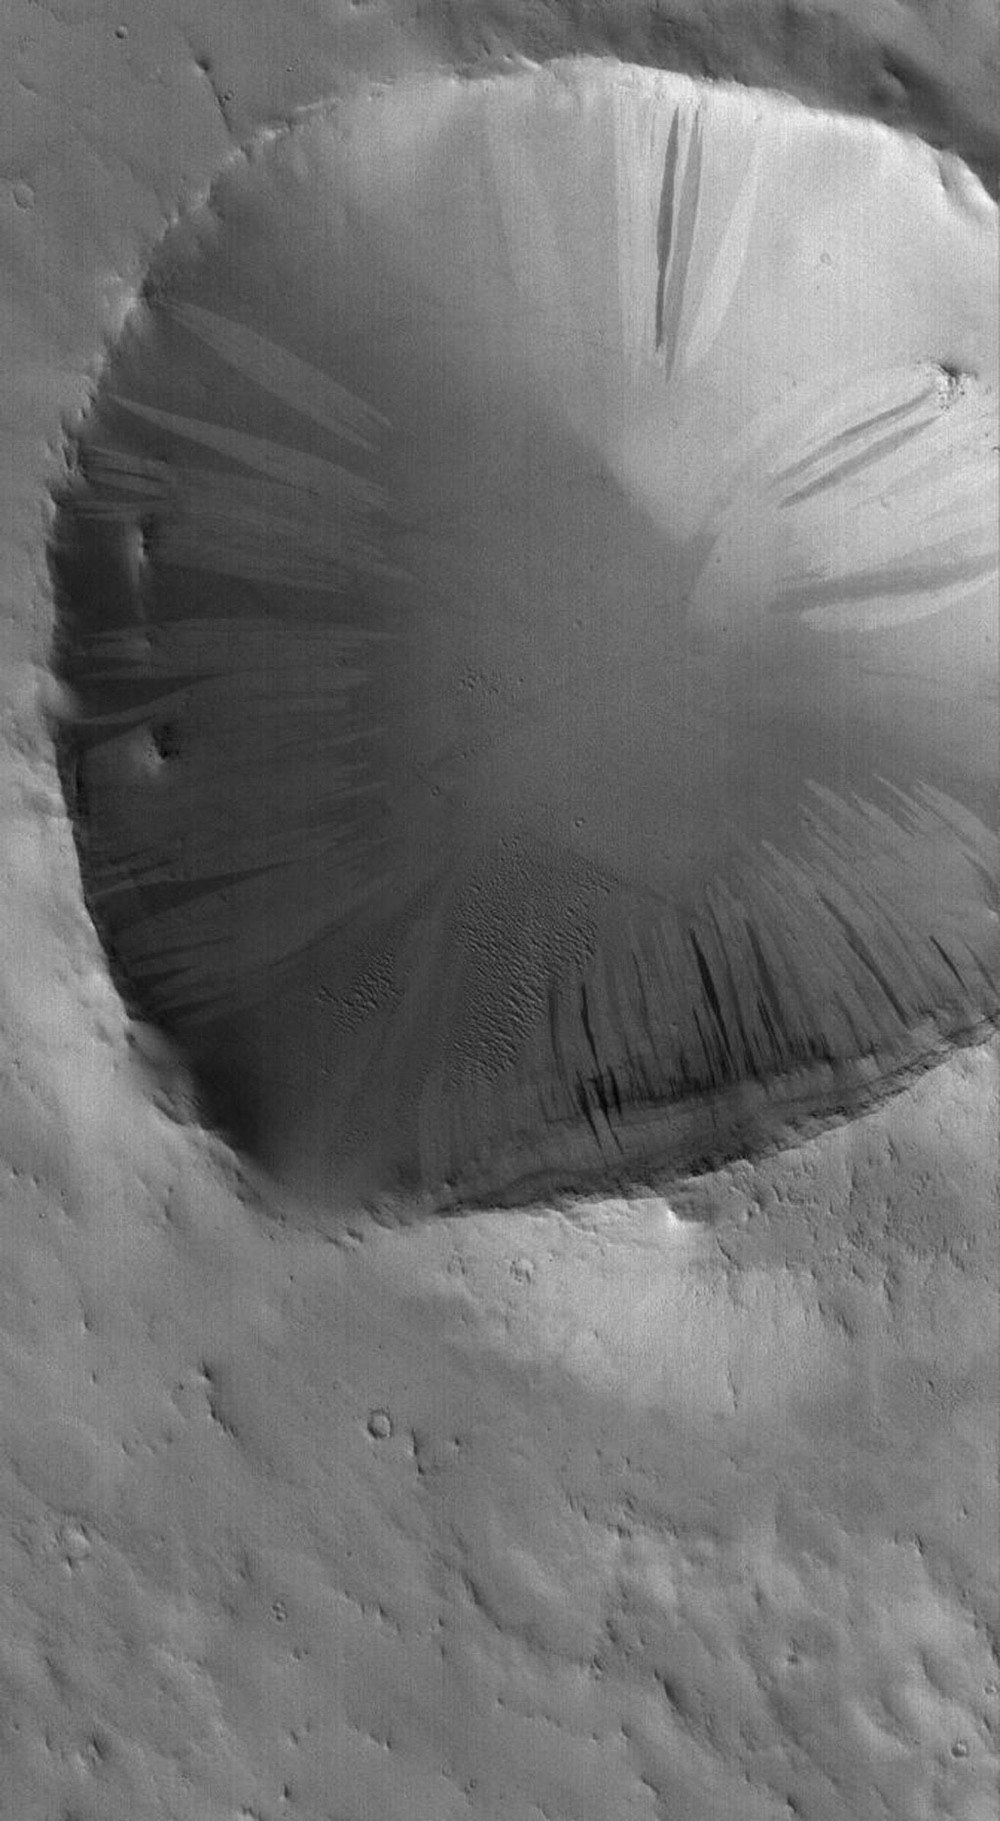 NASA's Mars Global Surveyor shows a dust-mantled crater in central Arabia Terra on Mars. Light and dark slope streaks have formed on the crater walls, as dry dust has slid down the slopes.